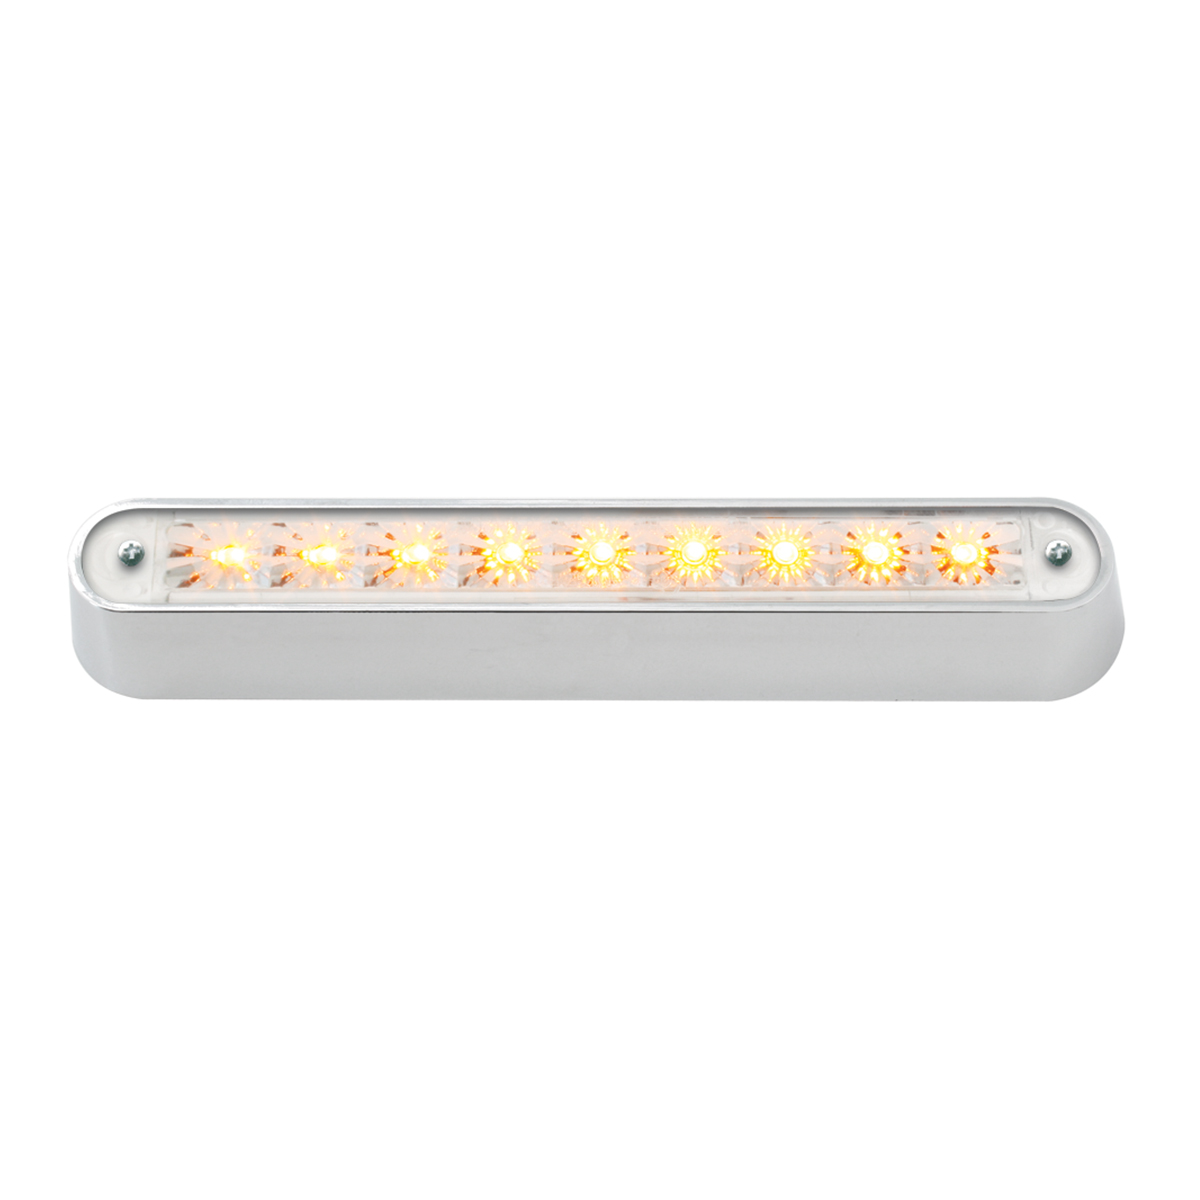 "76091 6.5"" Surface Mount LED Light Bar w/ Chrome Plastic Base"